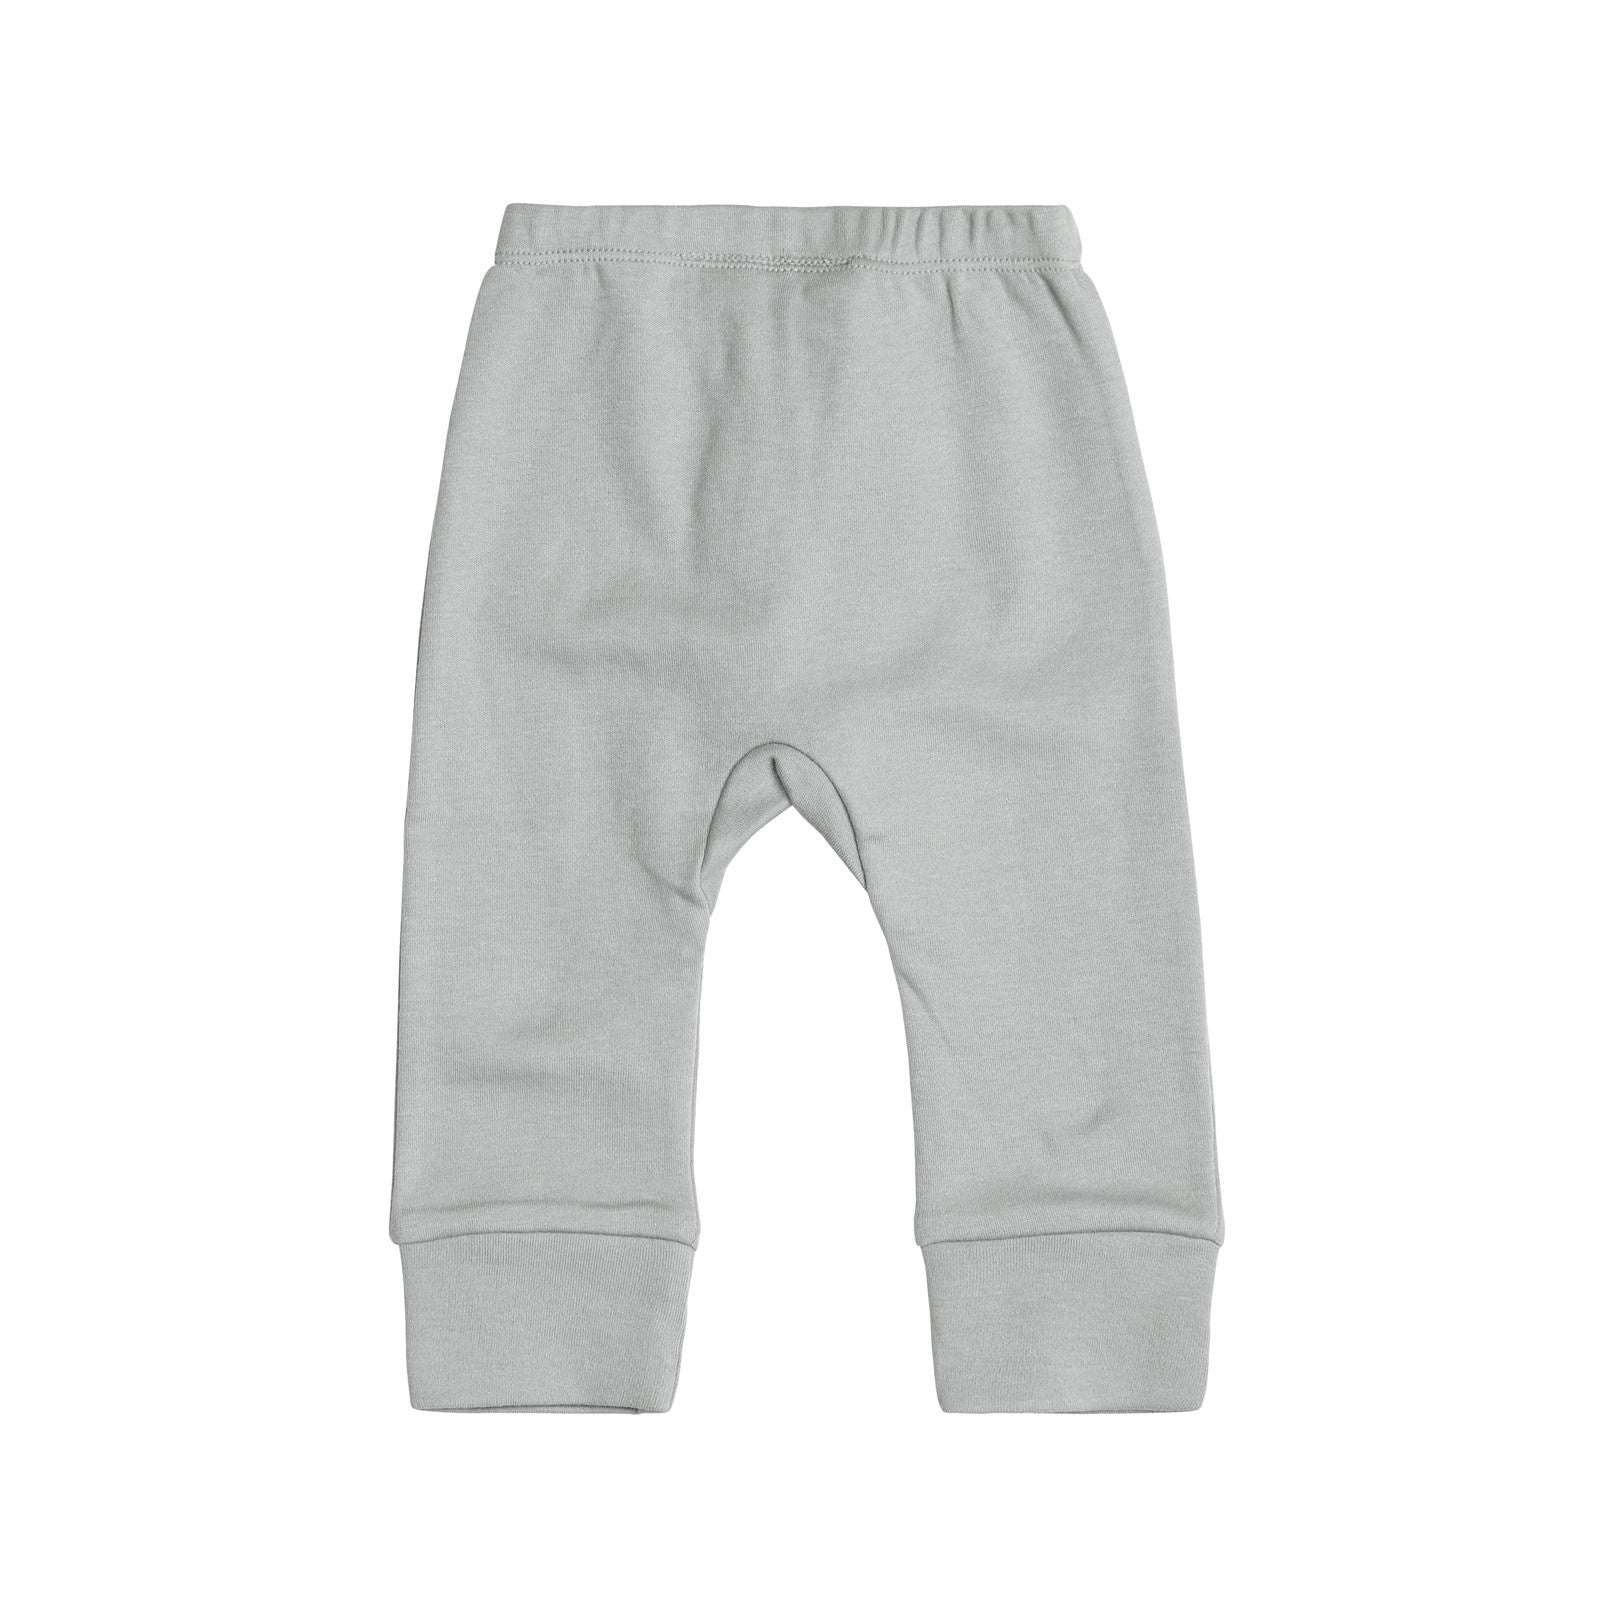 Sapling Child Essentials Heart Pants Sapling Child Baby & Toddler Clothing at Little Earth Nest Eco Shop